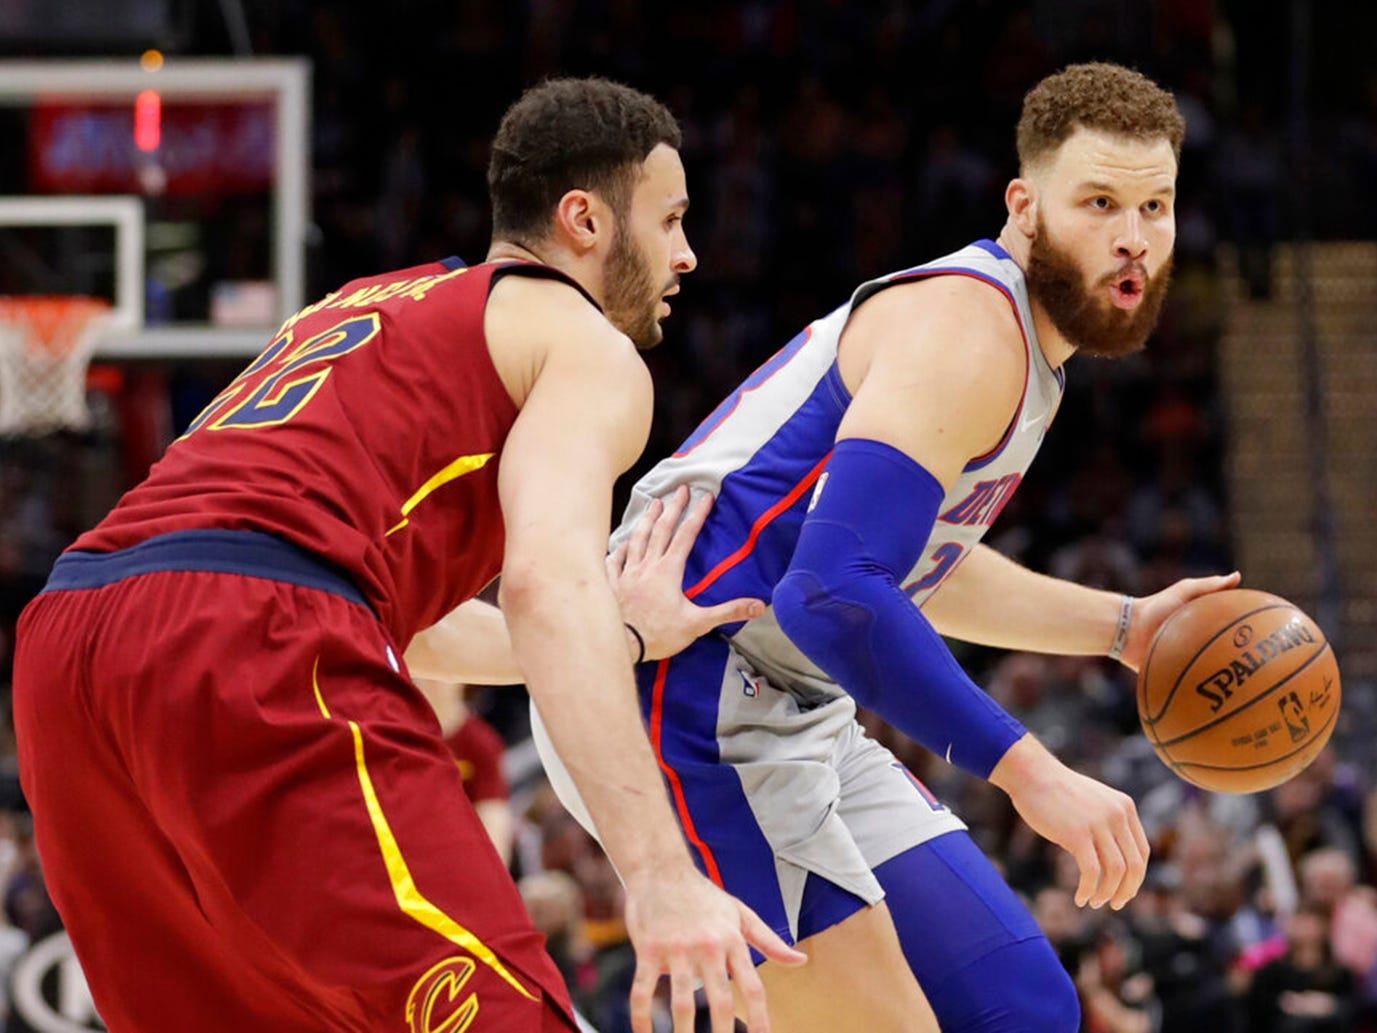 Detroit Pistons' Blake Griffin, right, drives past Cleveland Cavaliers' Larry Nance Jr. in the first half.